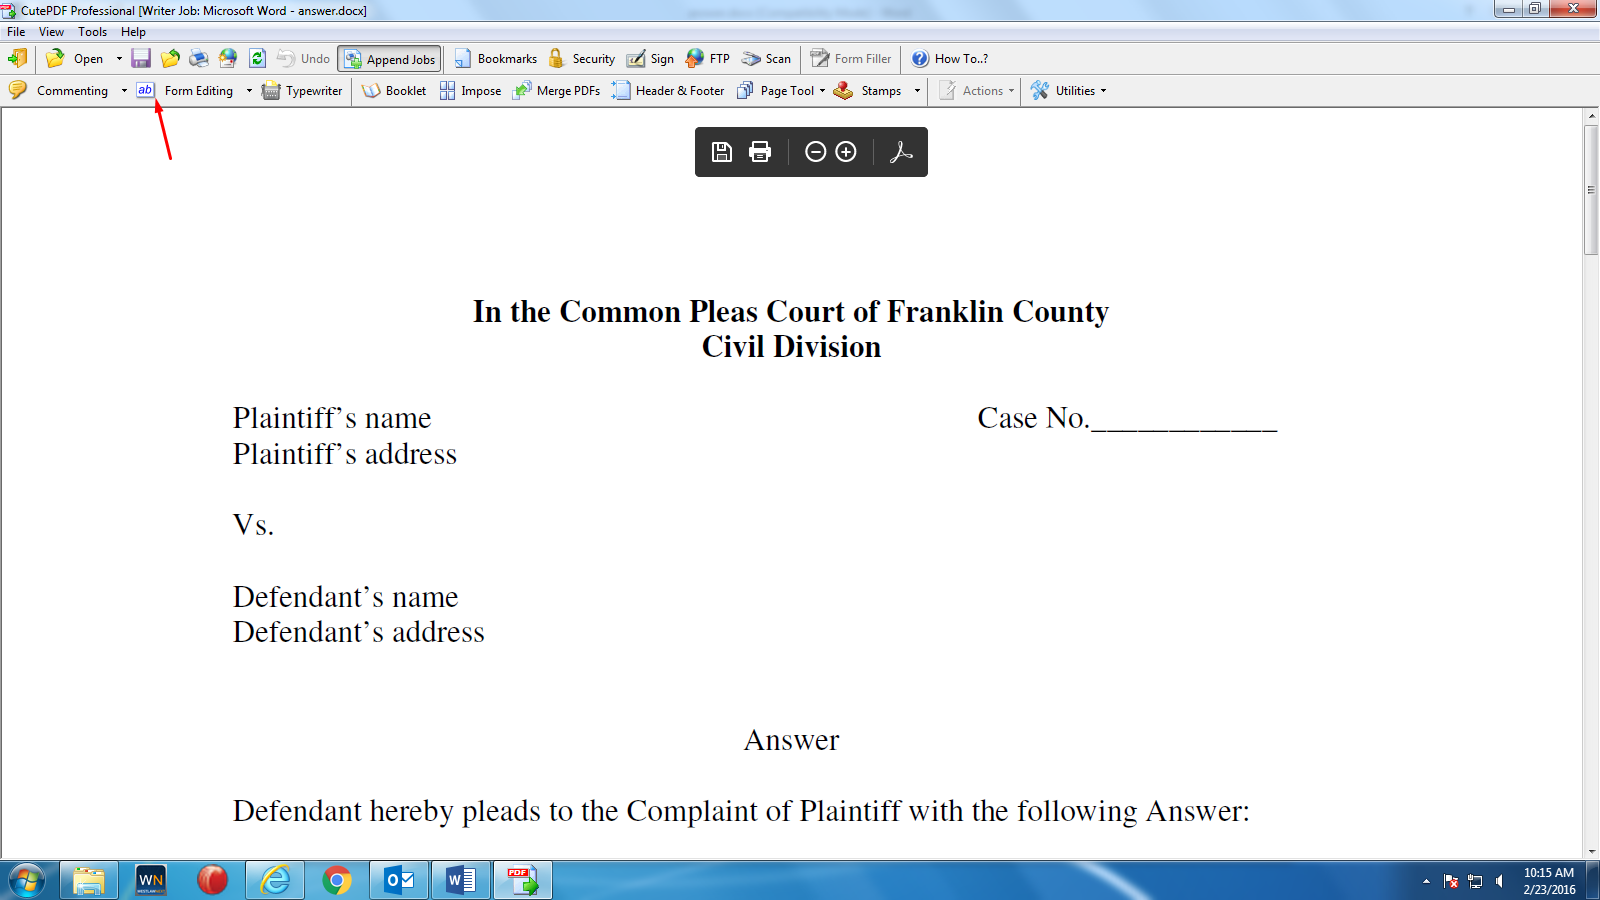 CutePDF - Creating Fillable Forms - LibGuides at Franklin